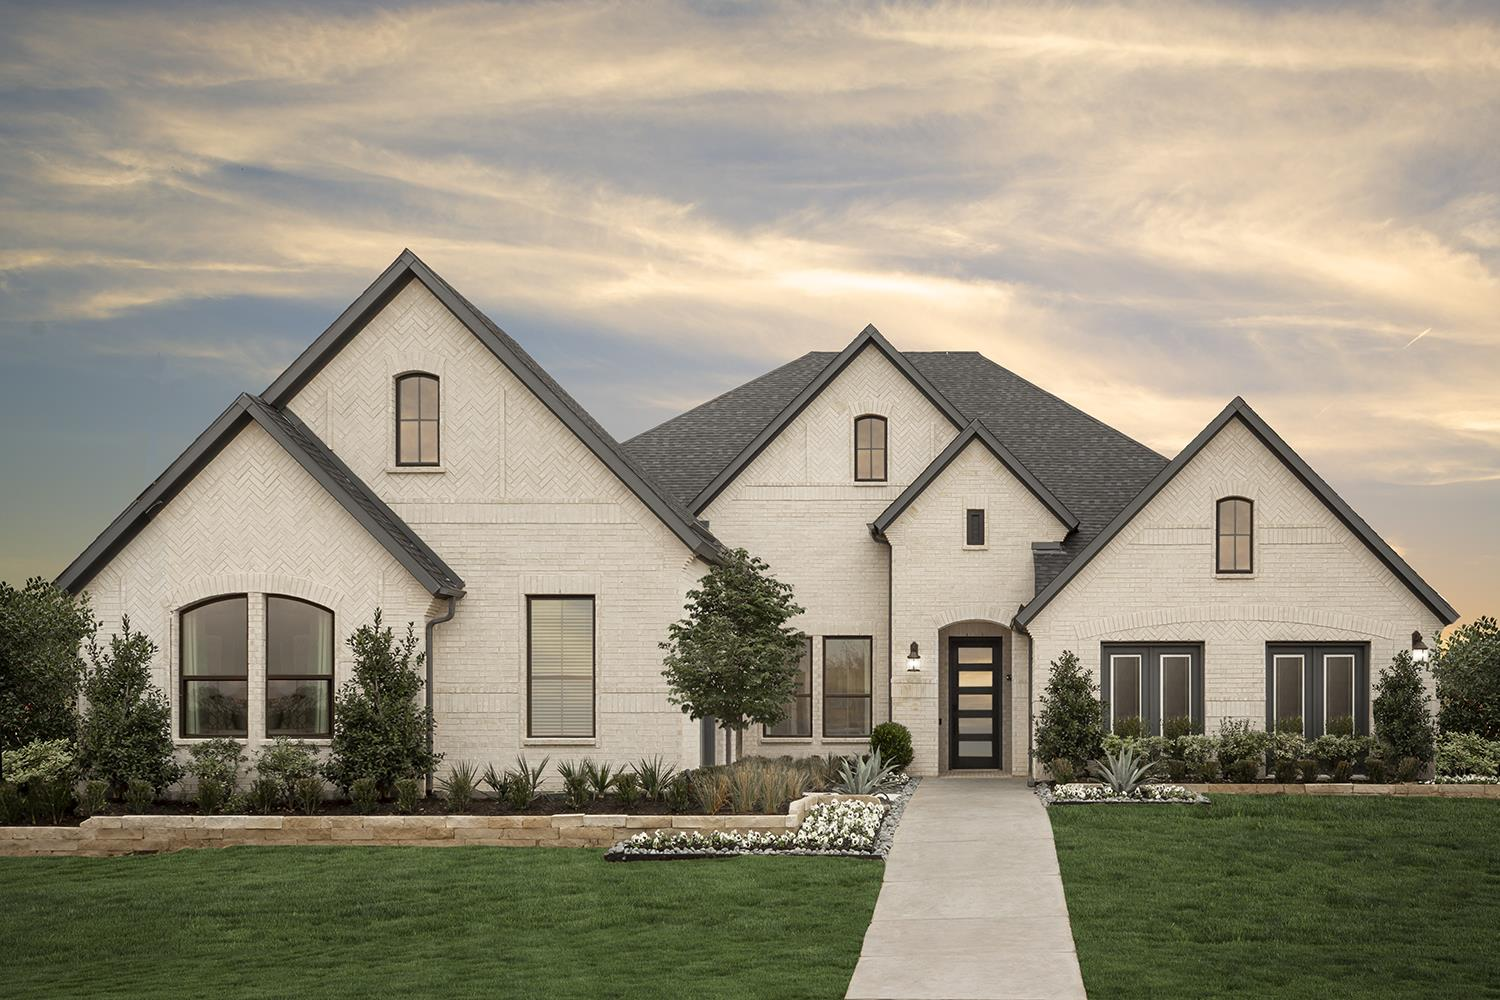 MHI Ranks No. 33 on Builder 100 List; Opens 19 Model Homes Through May